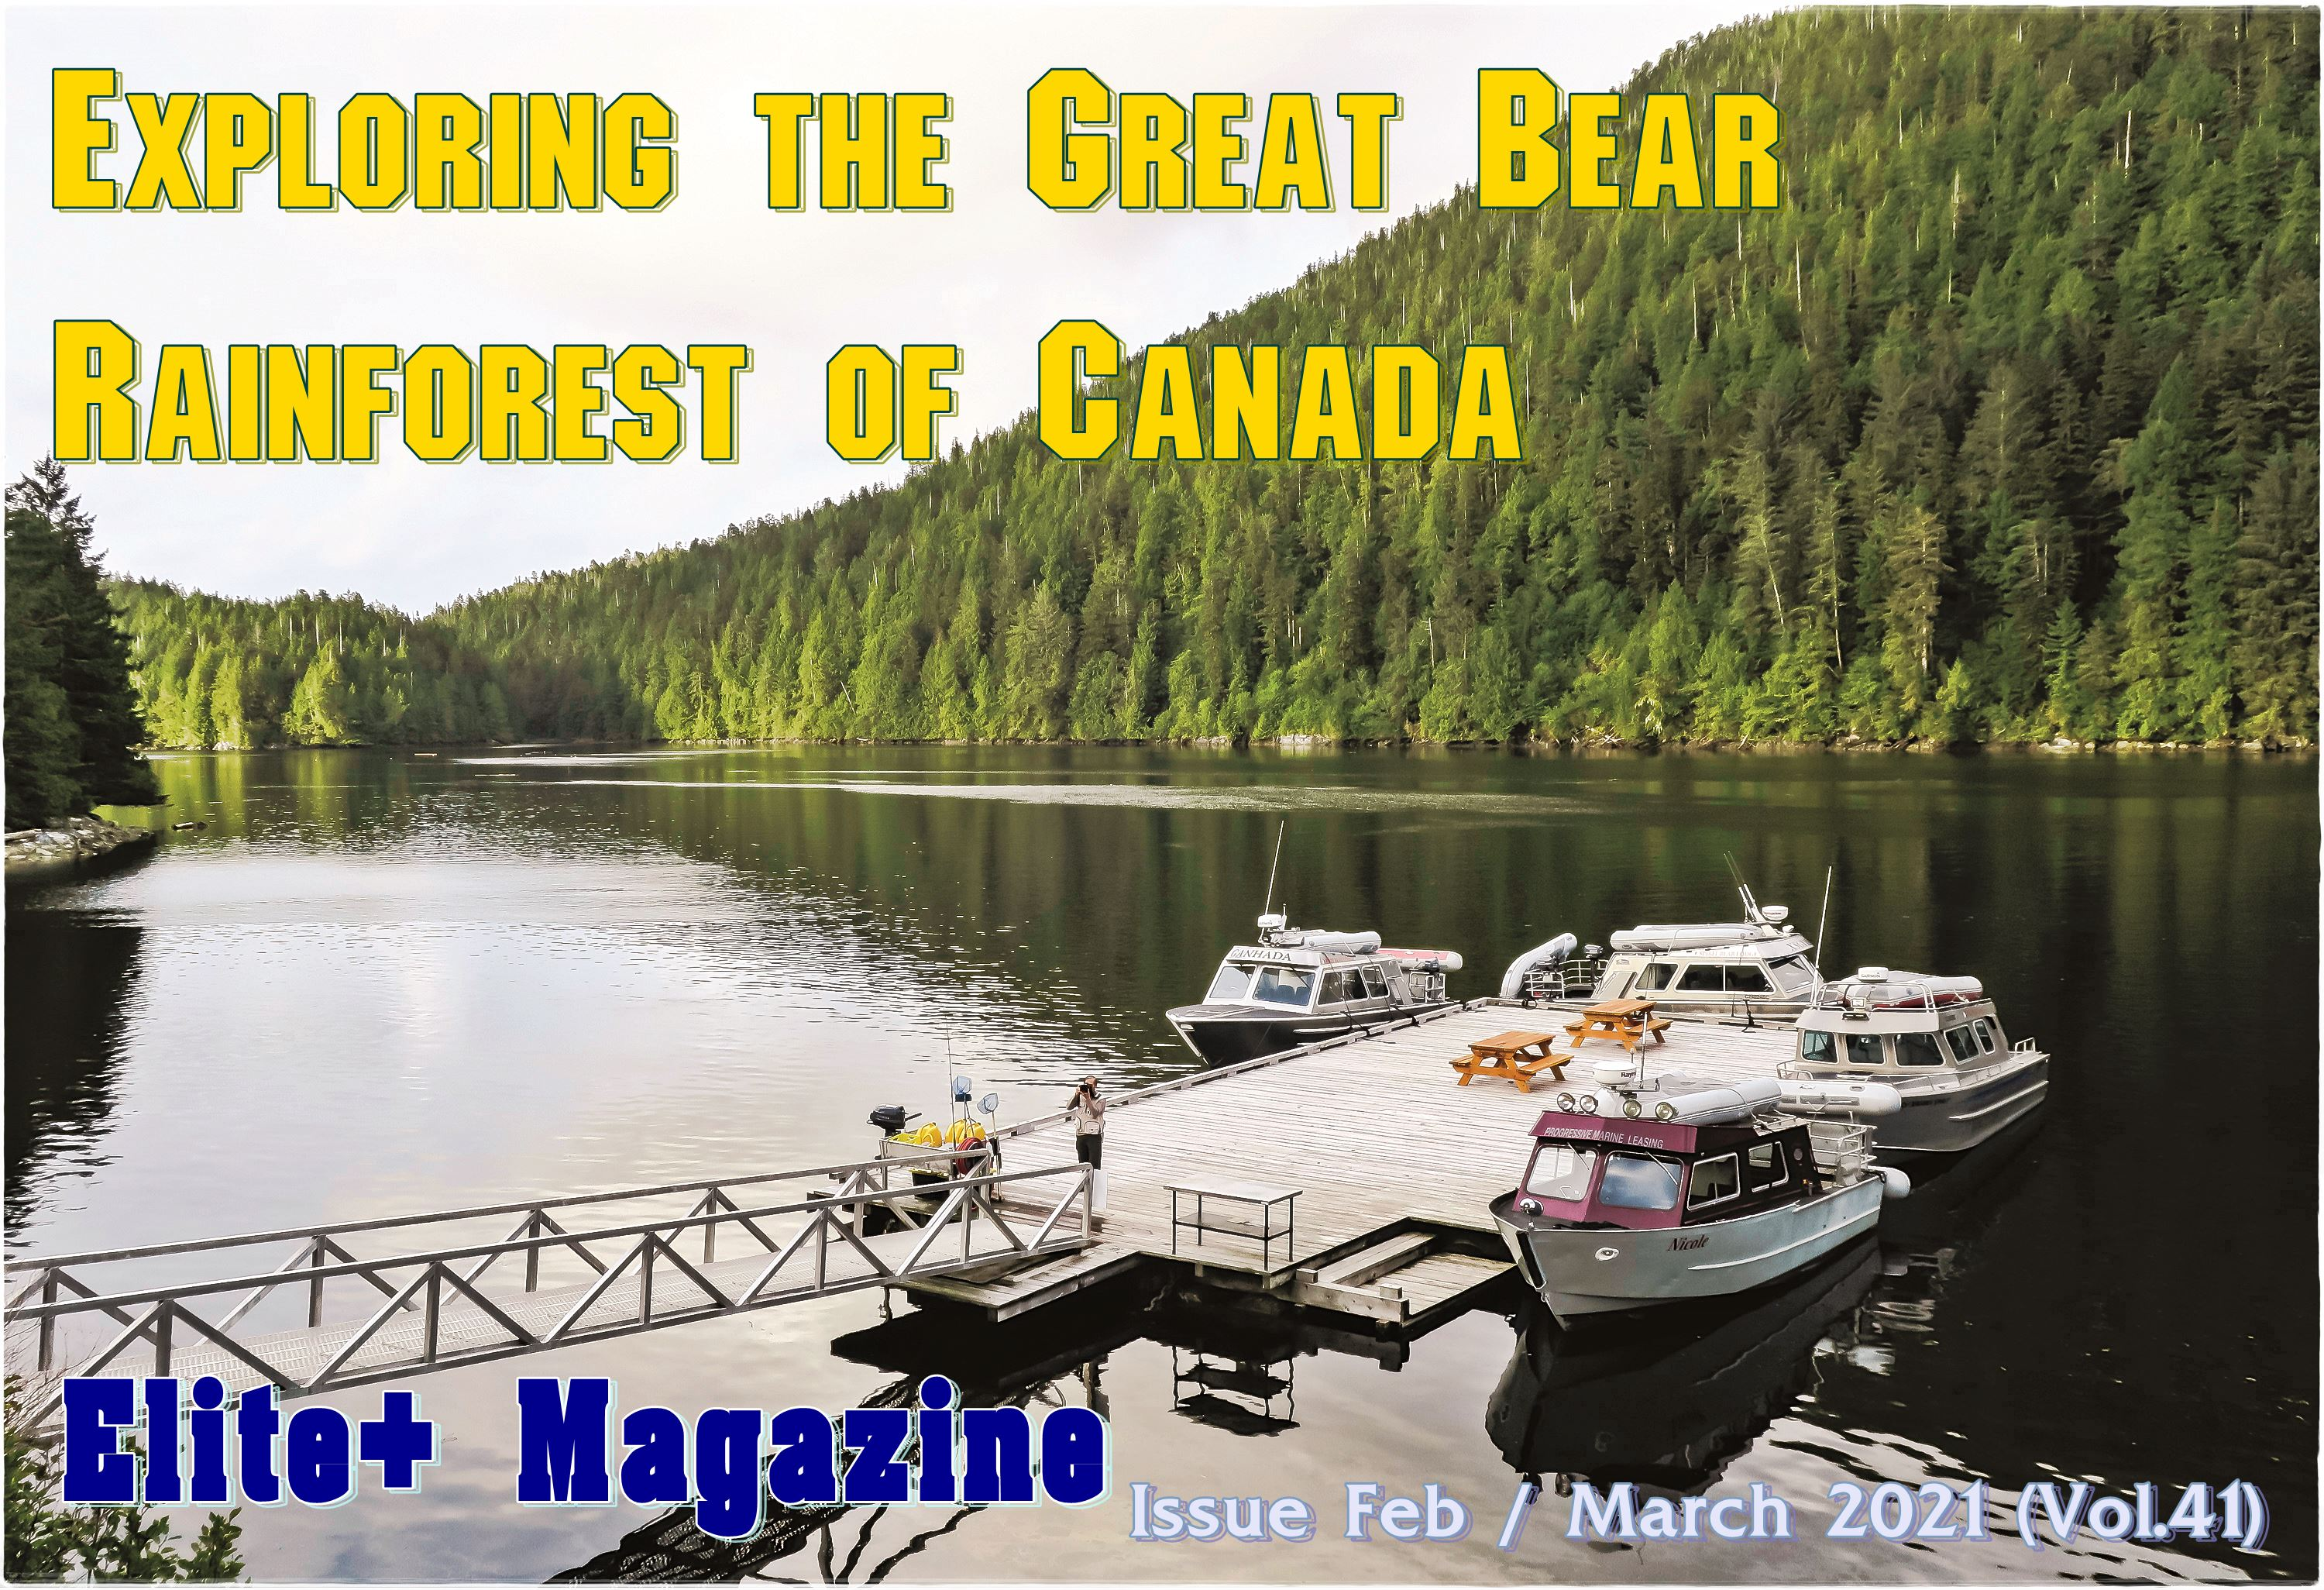 Exploring the Great Bear Rainforest of Canada